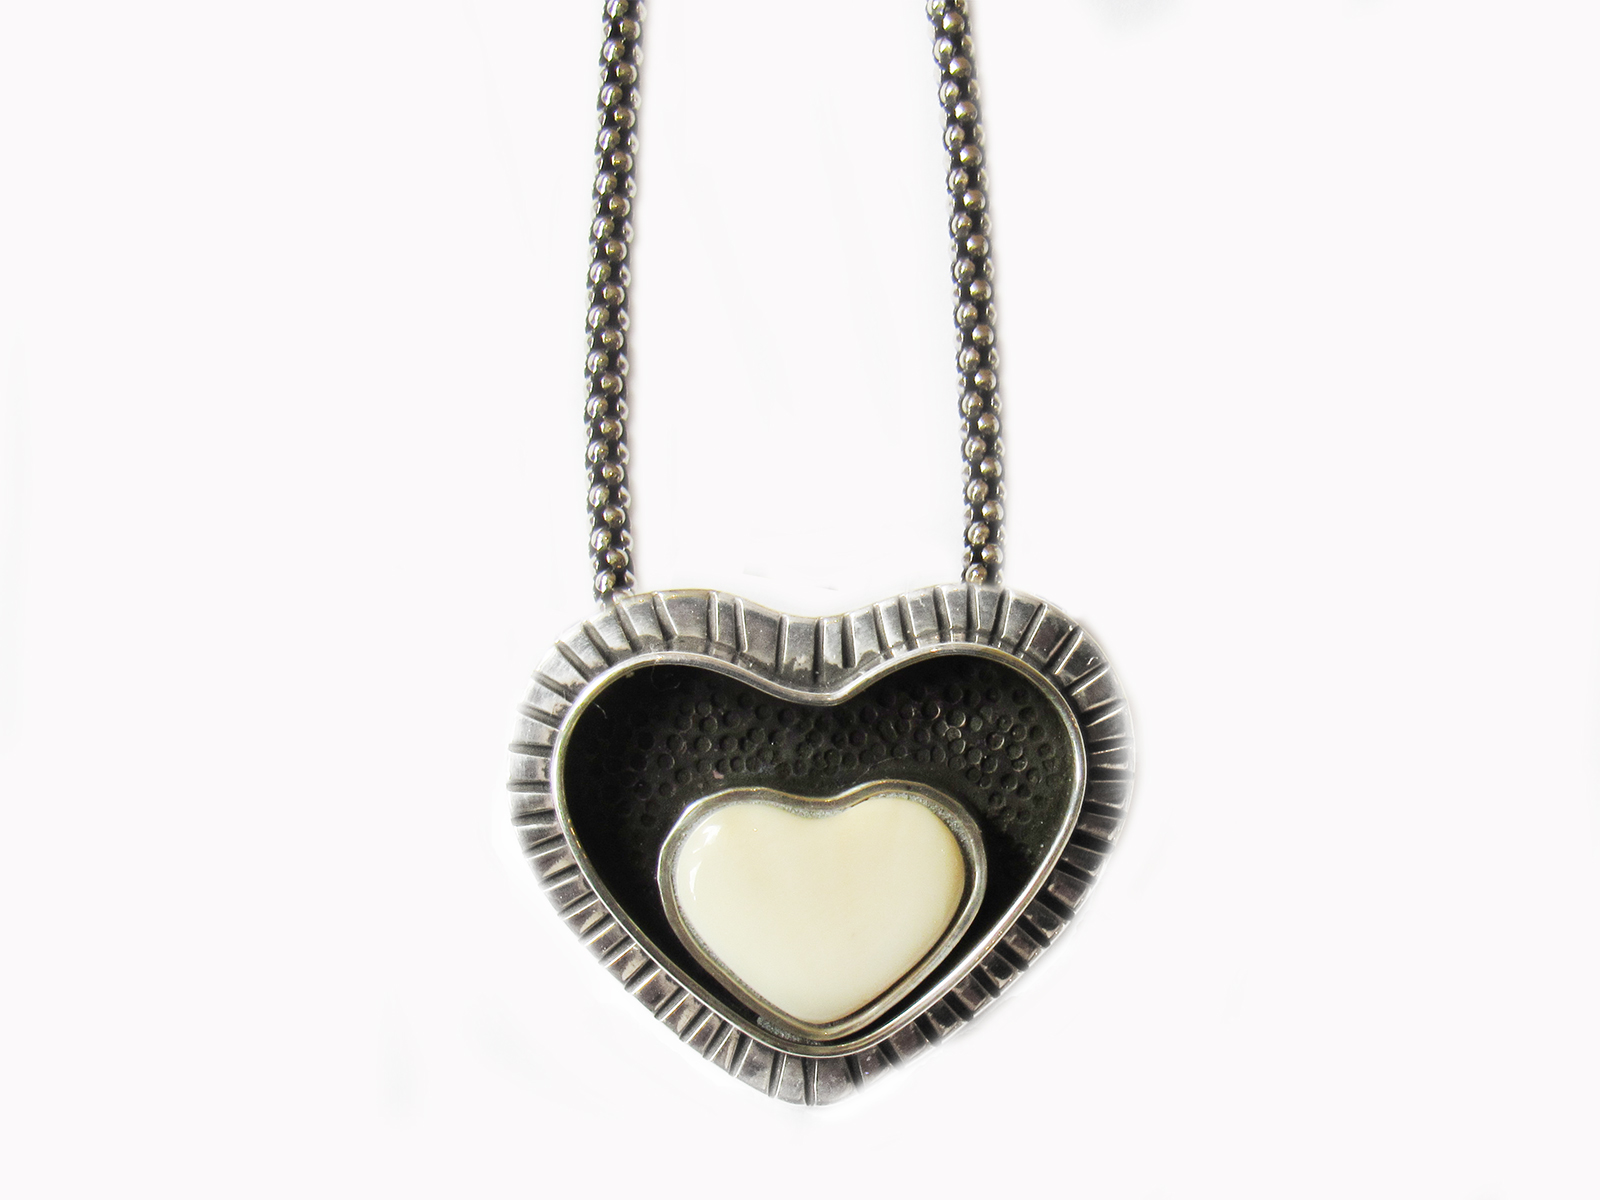 Shadow Box Heart Necklace